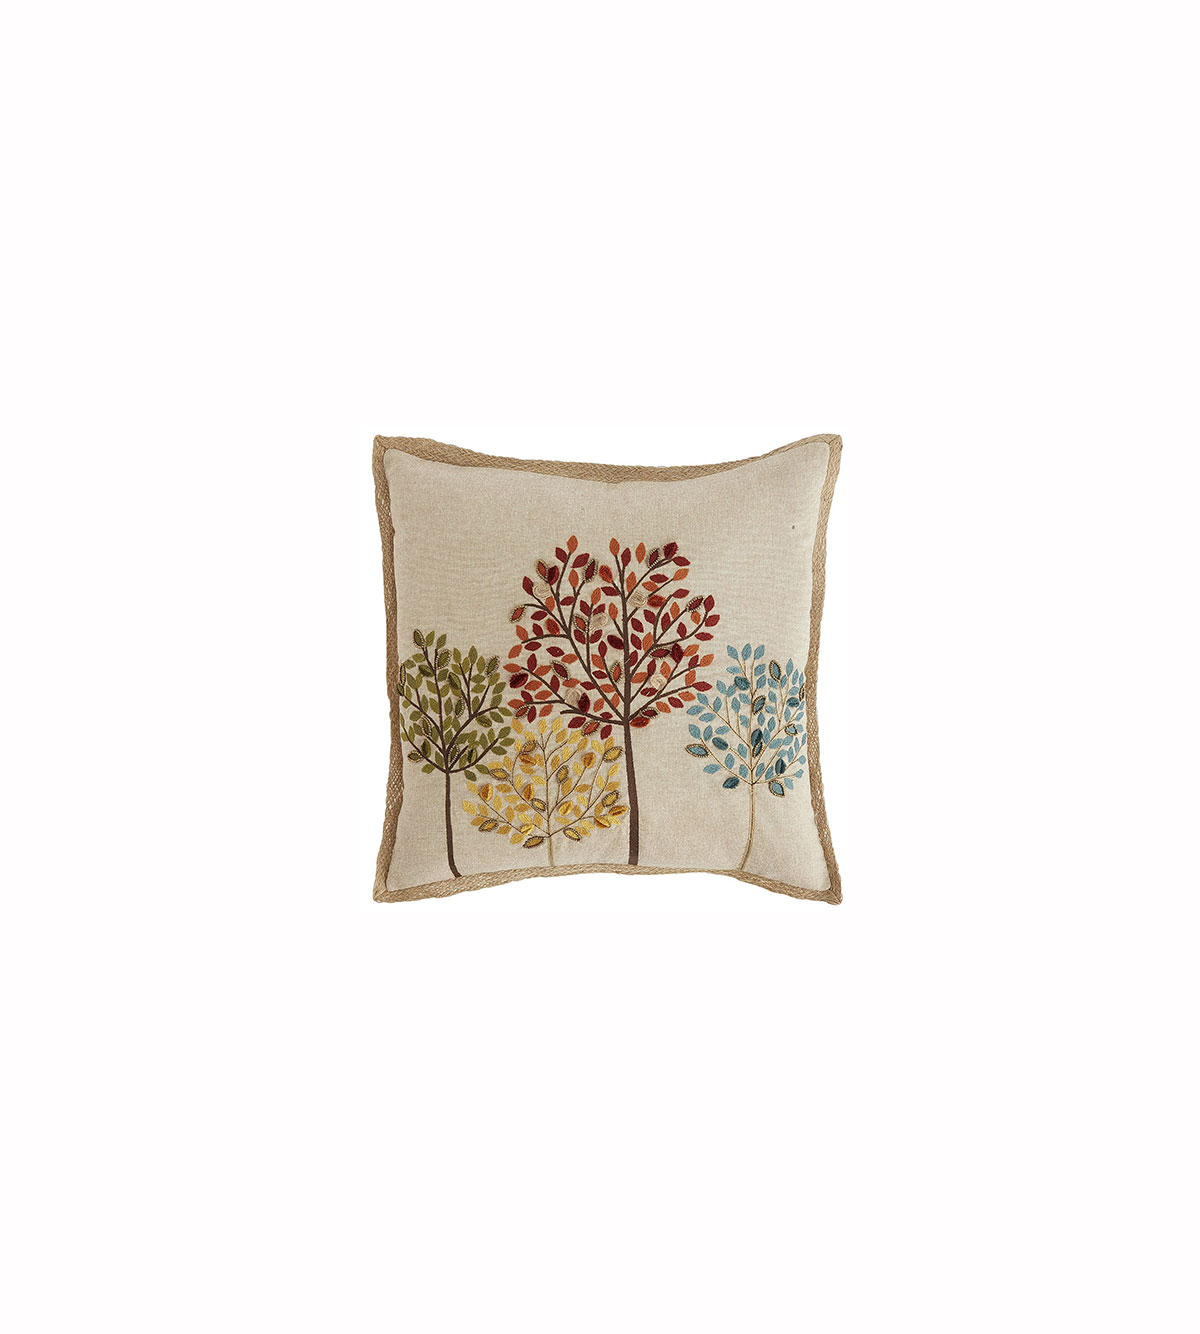 Beaded and Embroidered Trees Pillow